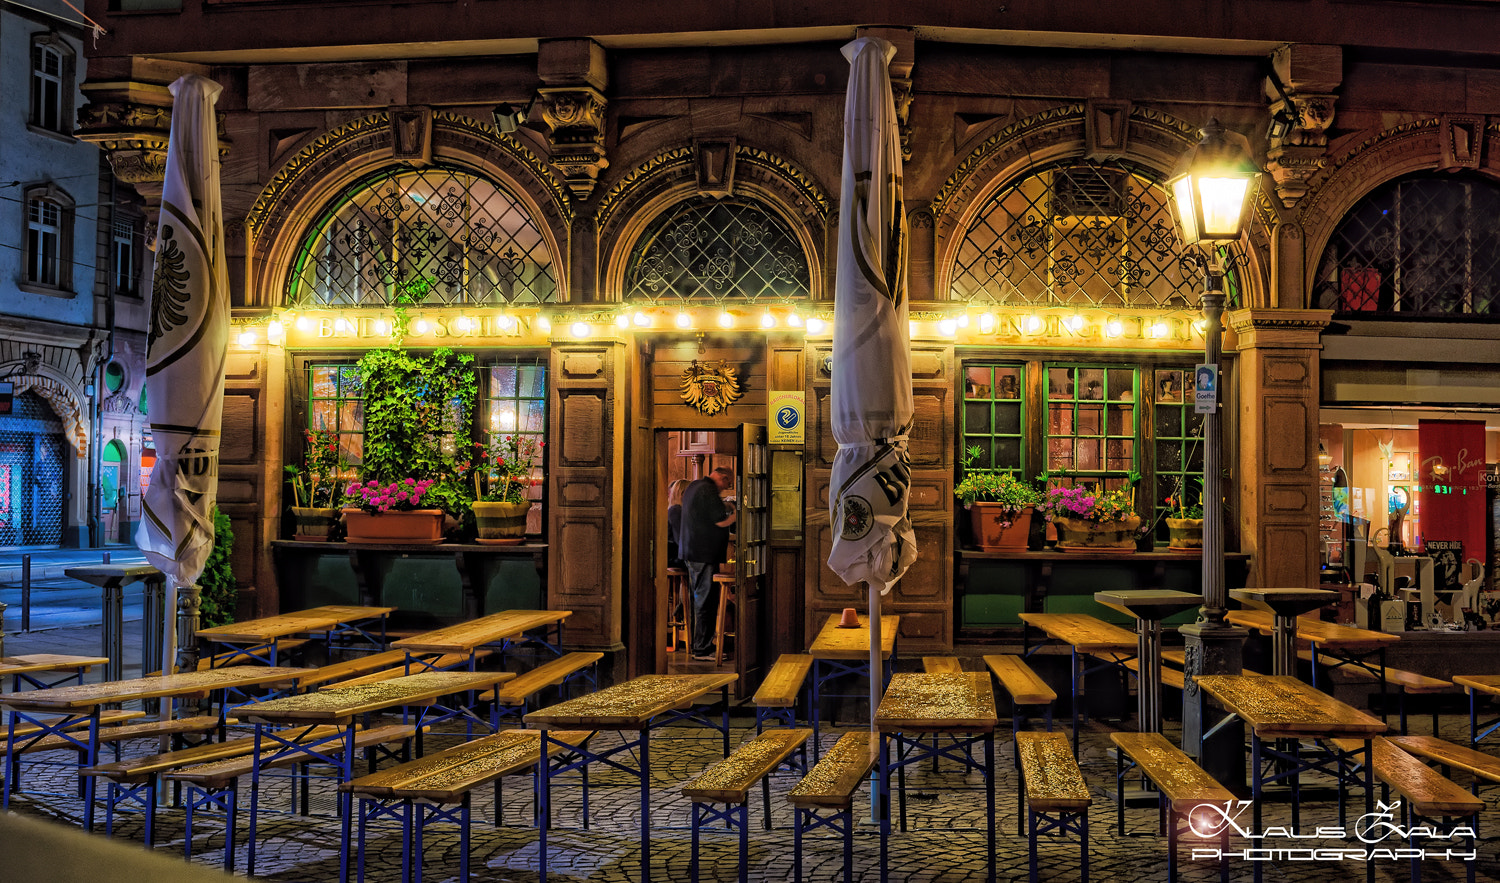 Photograph out at night in Frankfurt by klausZ - Photography on 500px